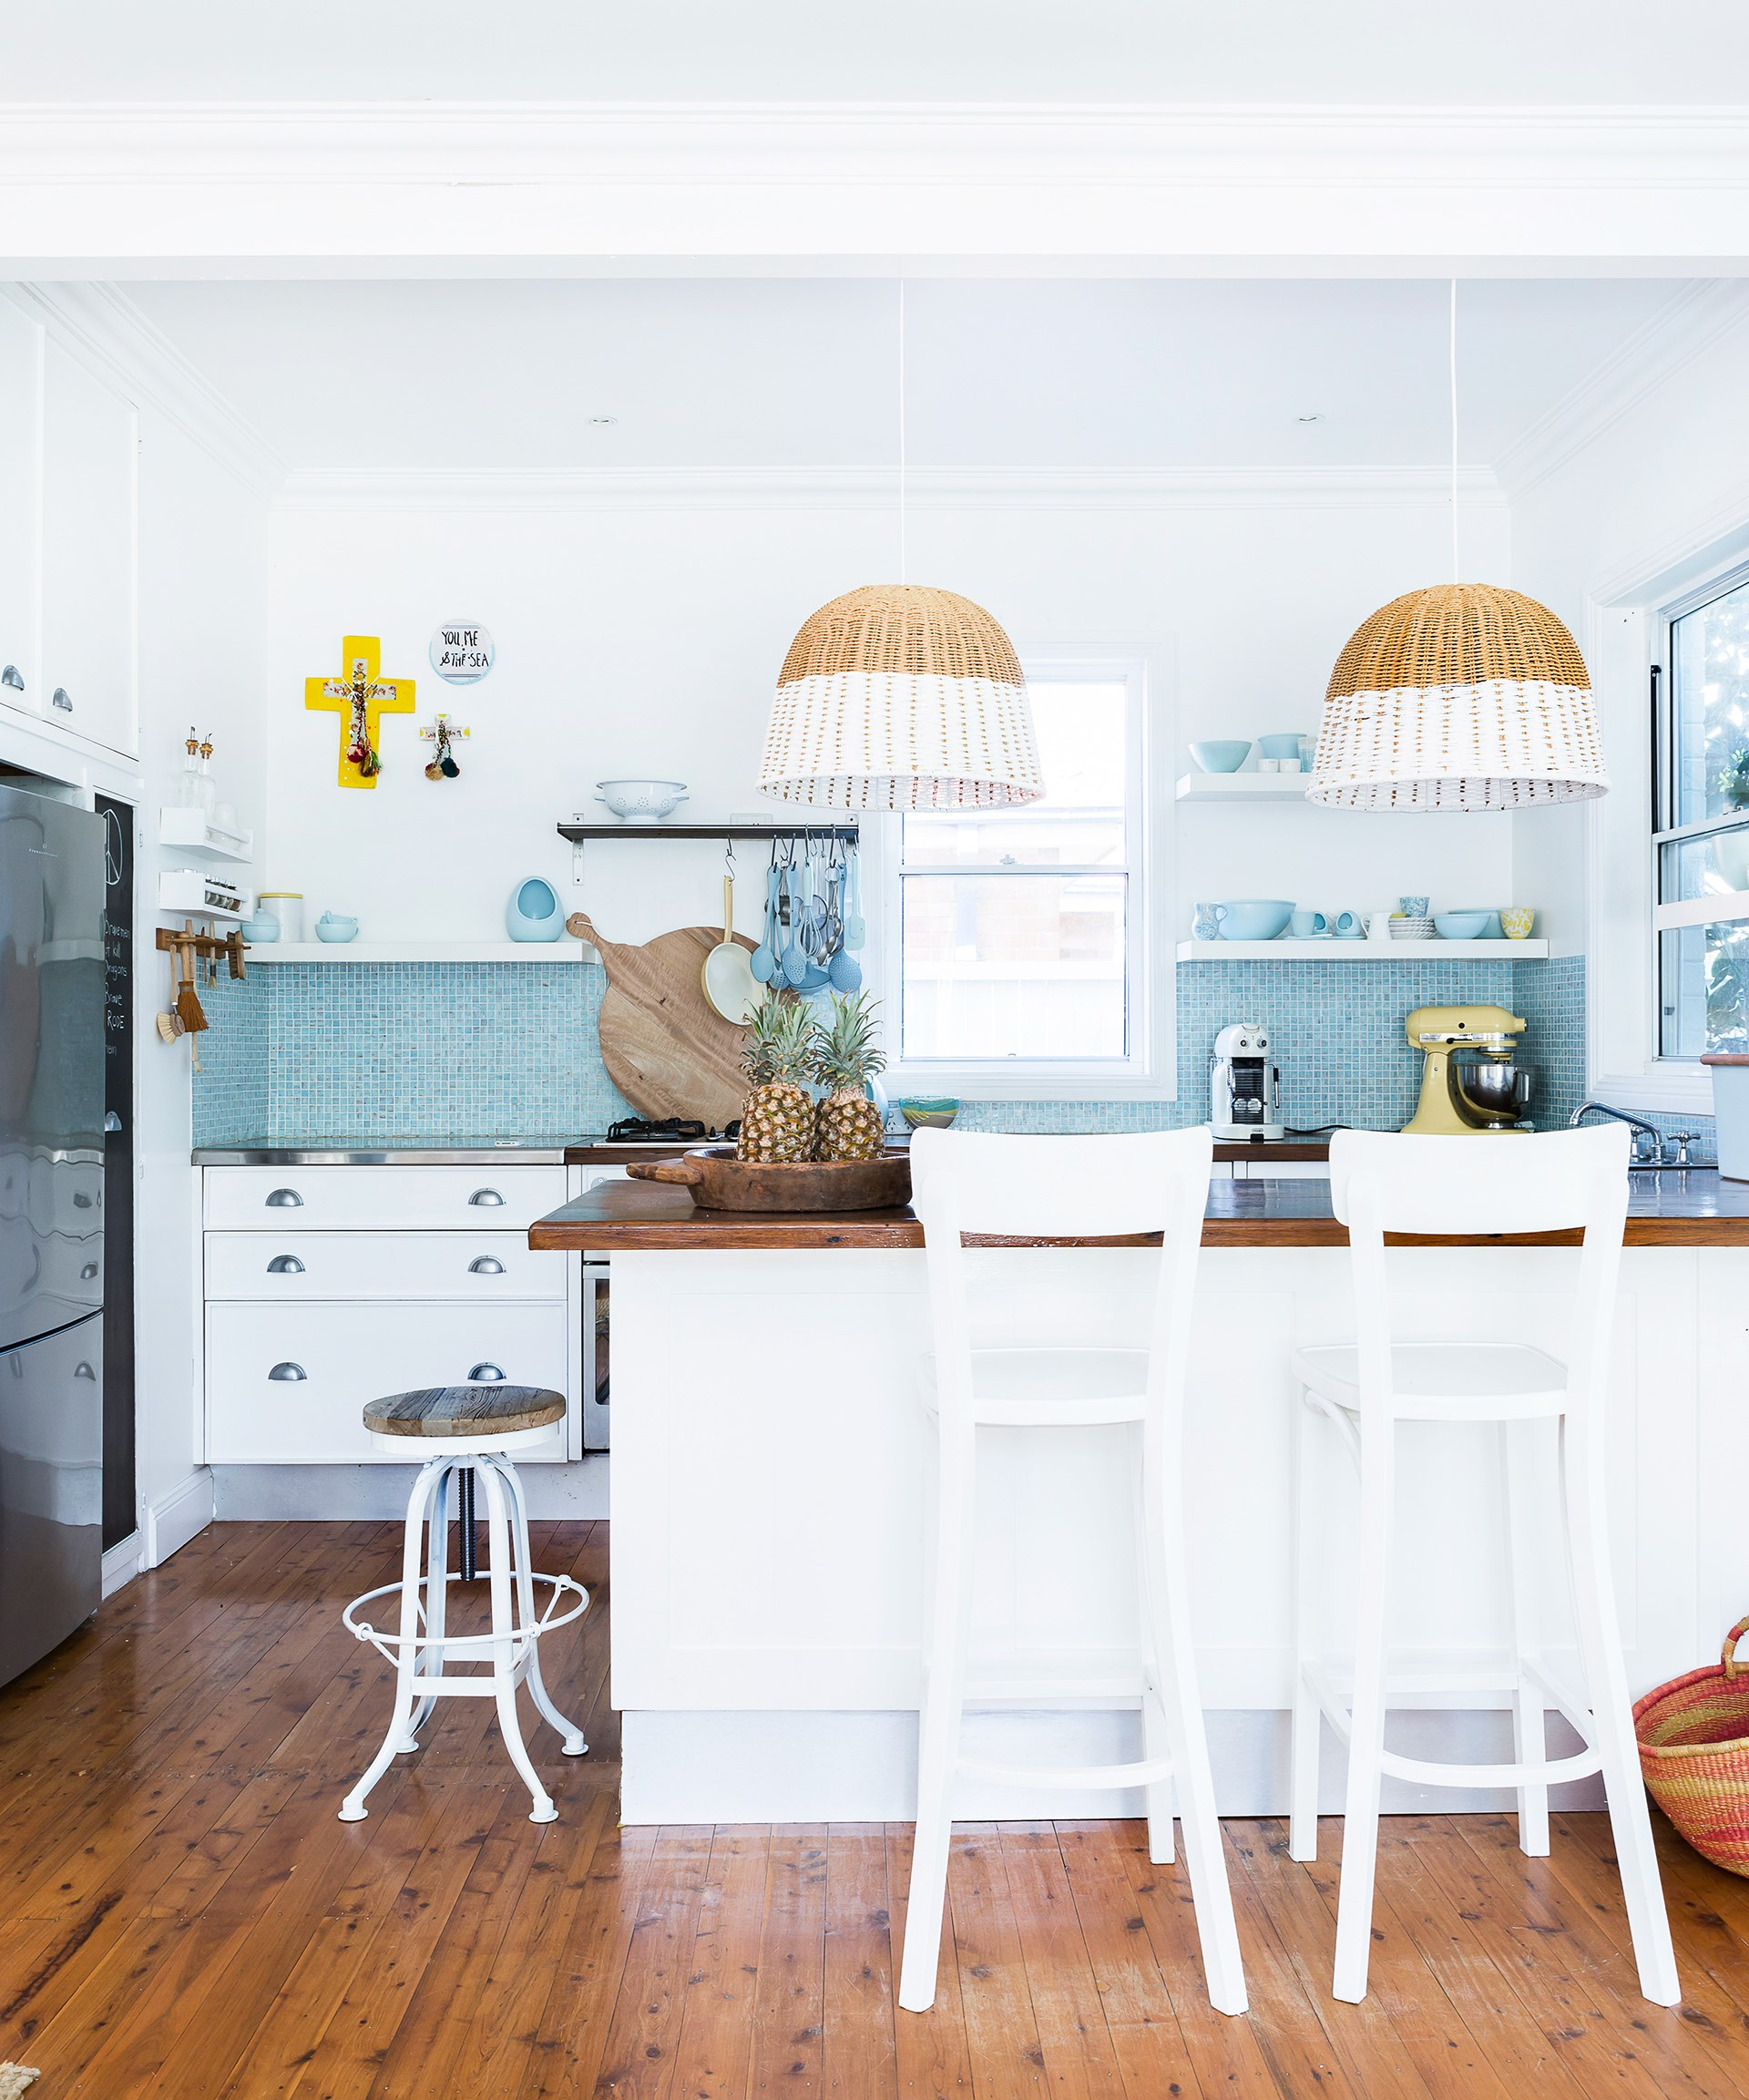 "Colour-coordinate your kitchen utensils for a cohesive look, similar to this [coastal style kitchen](http://www.homestolove.com.au/gallery-bernadettes-breezy-beach-house-1980|target=""_blank""). Photo: Maree Homer / *homes+*"